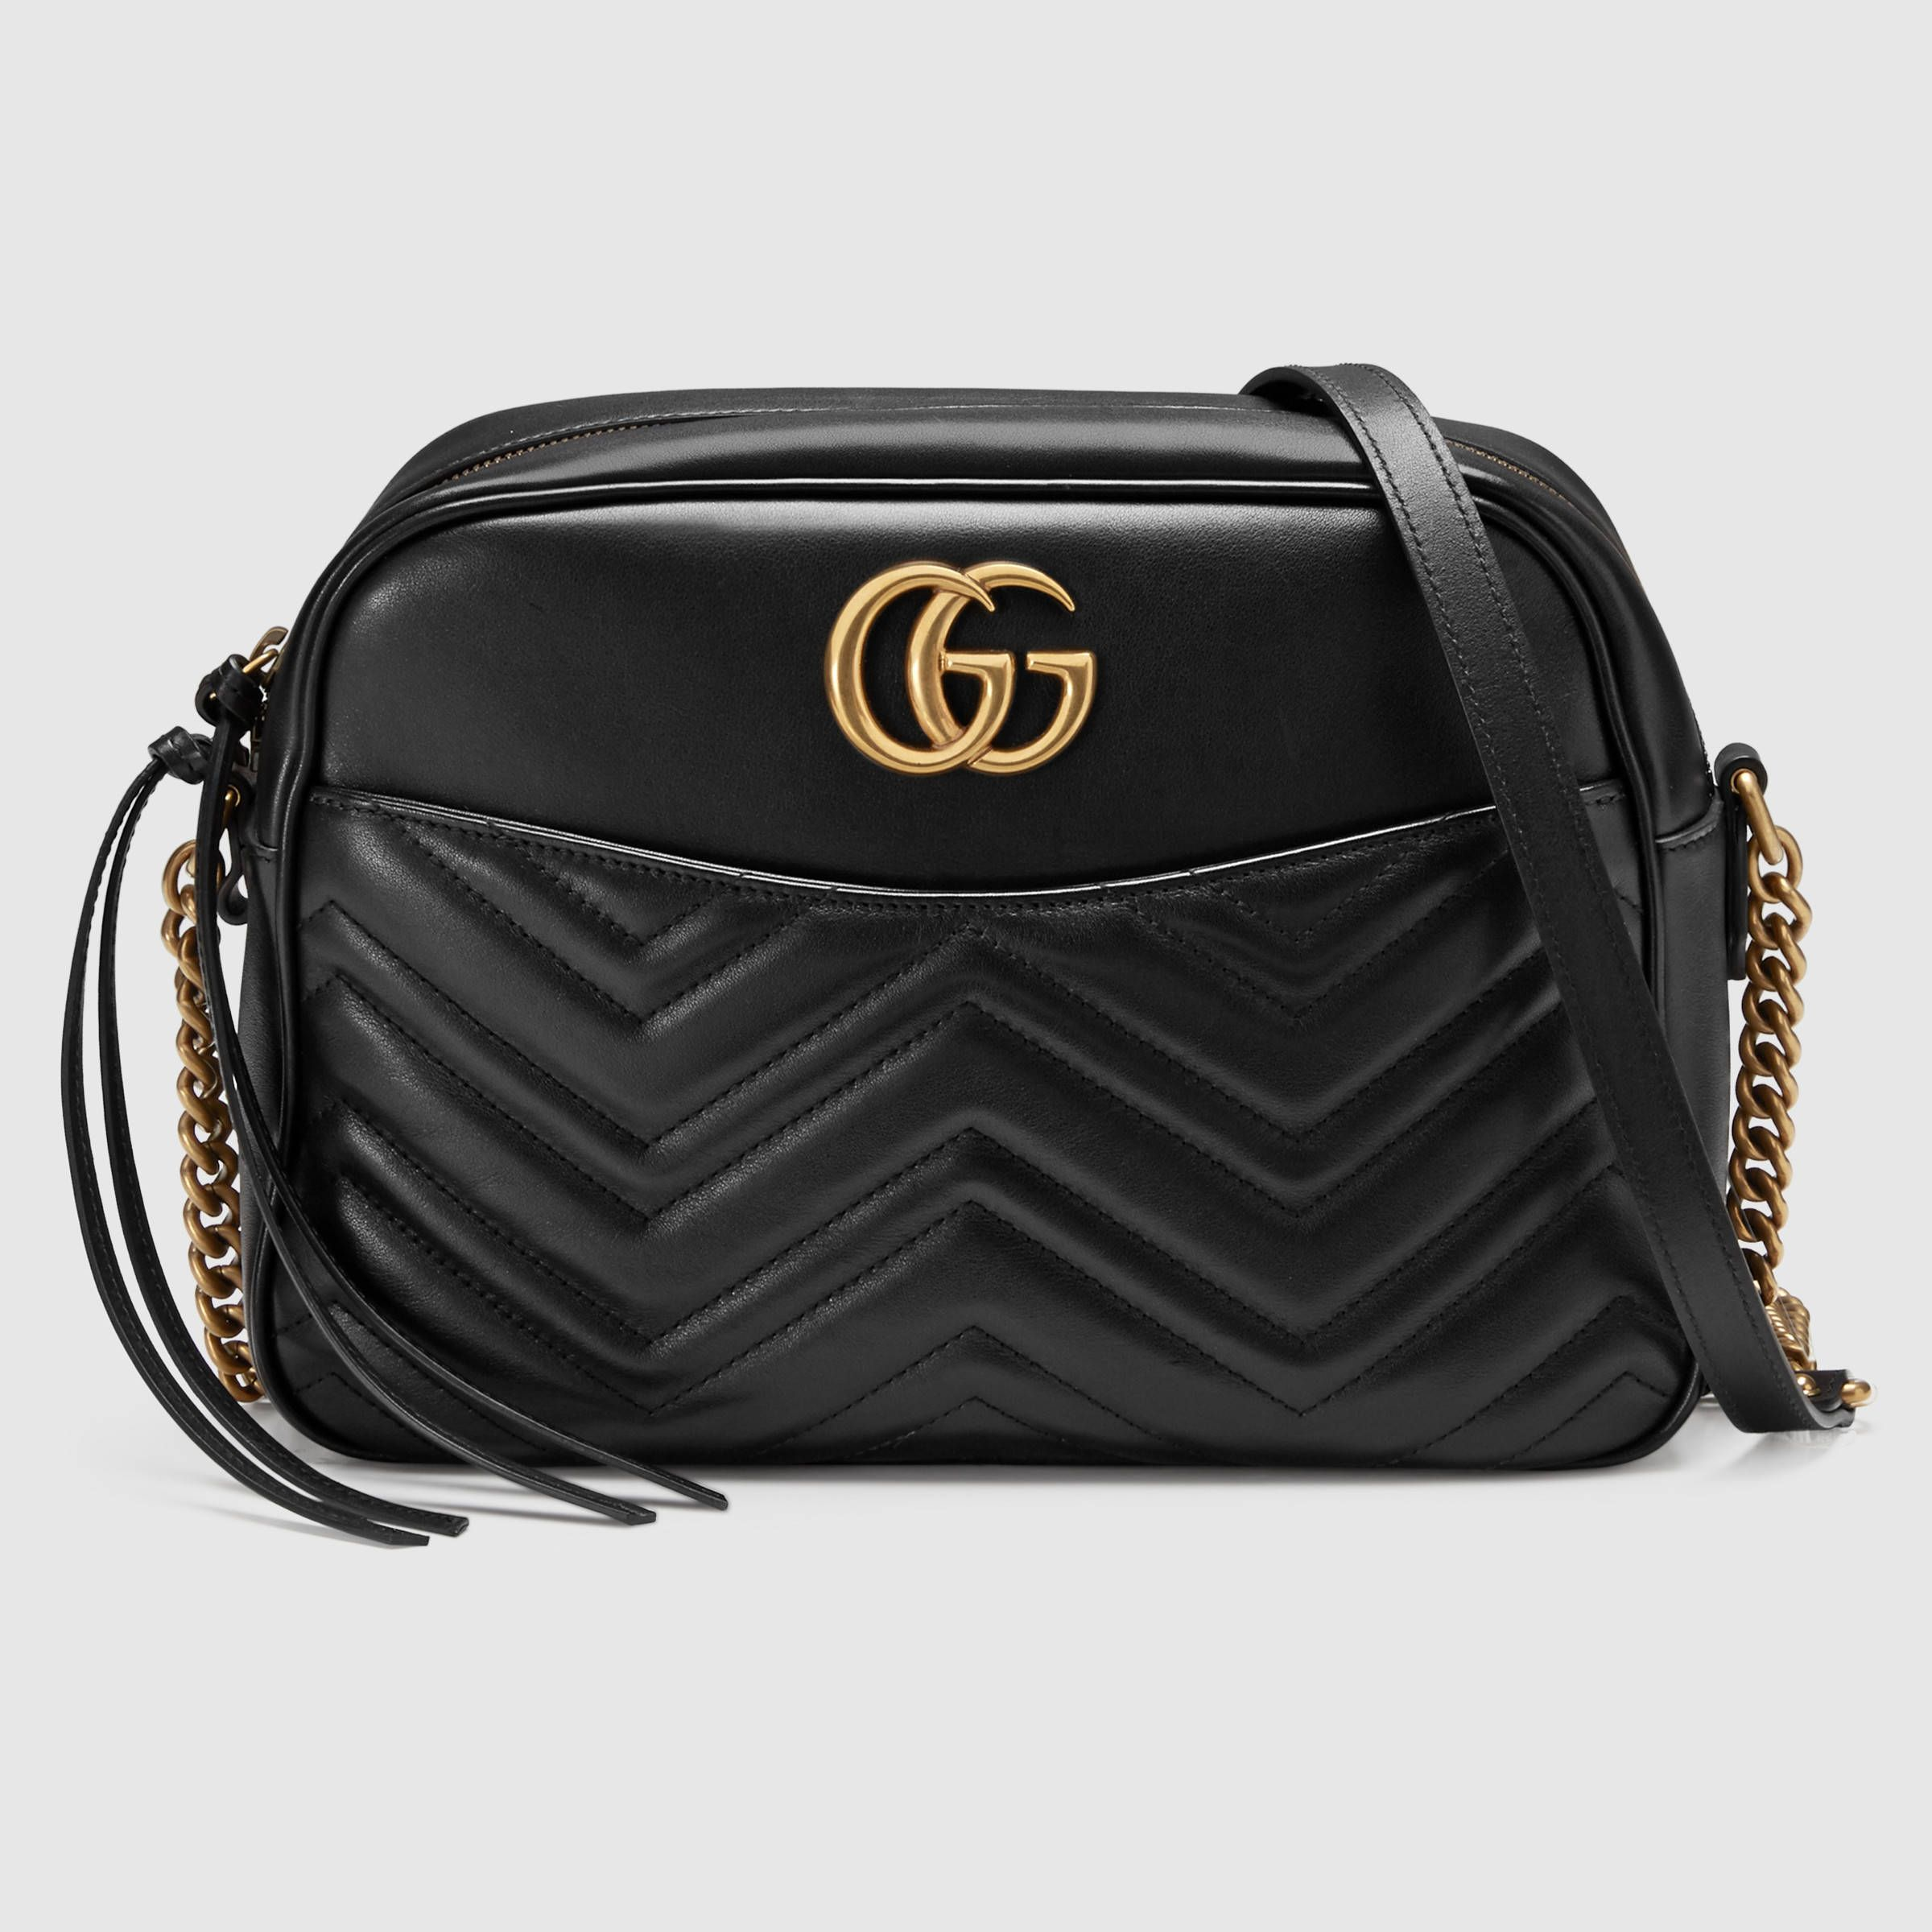 c7b8fa4404307 Gucci Women - GG Marmont matelassé shoulder bag - 443499DRW1T1000 ...